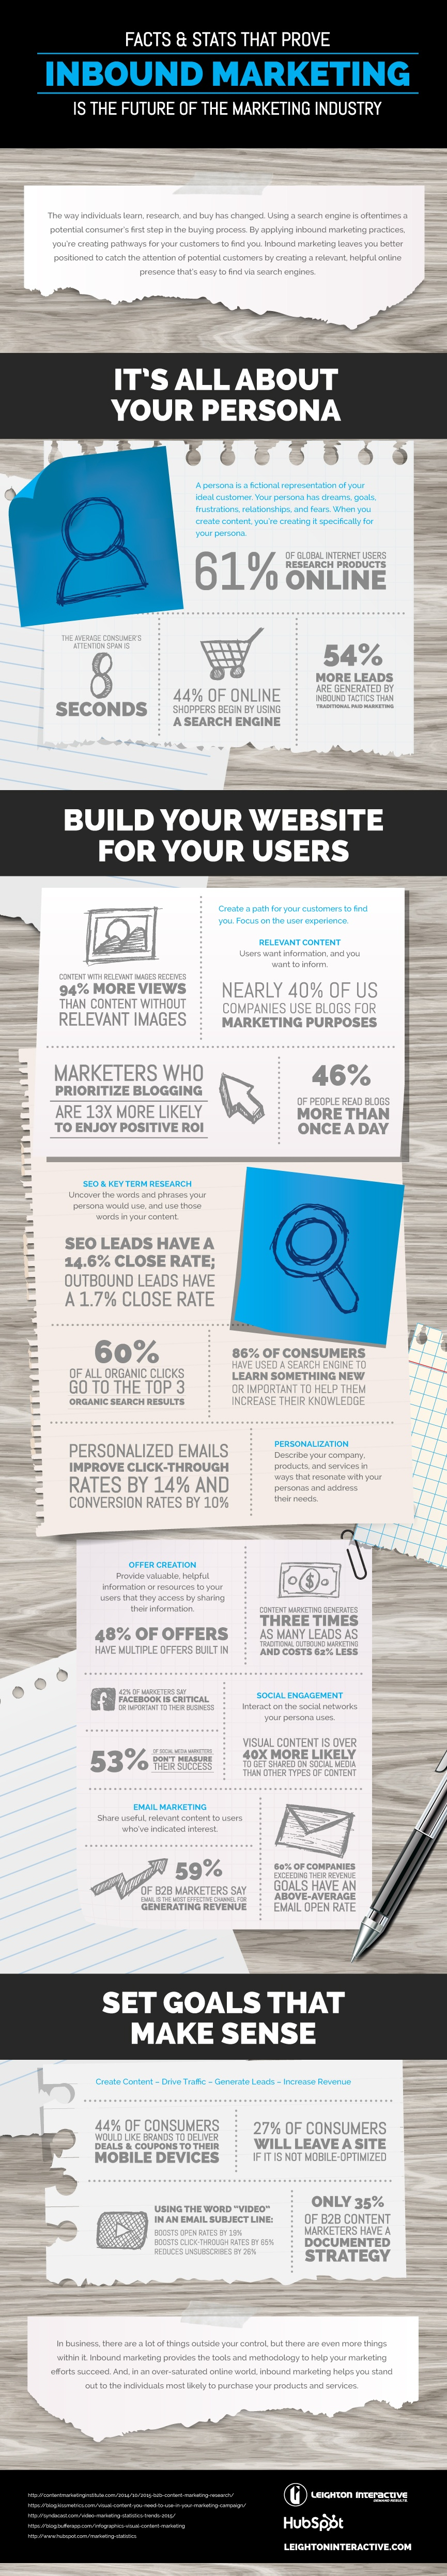 Facts-And-Stats-Inbound-Marketing.jpg